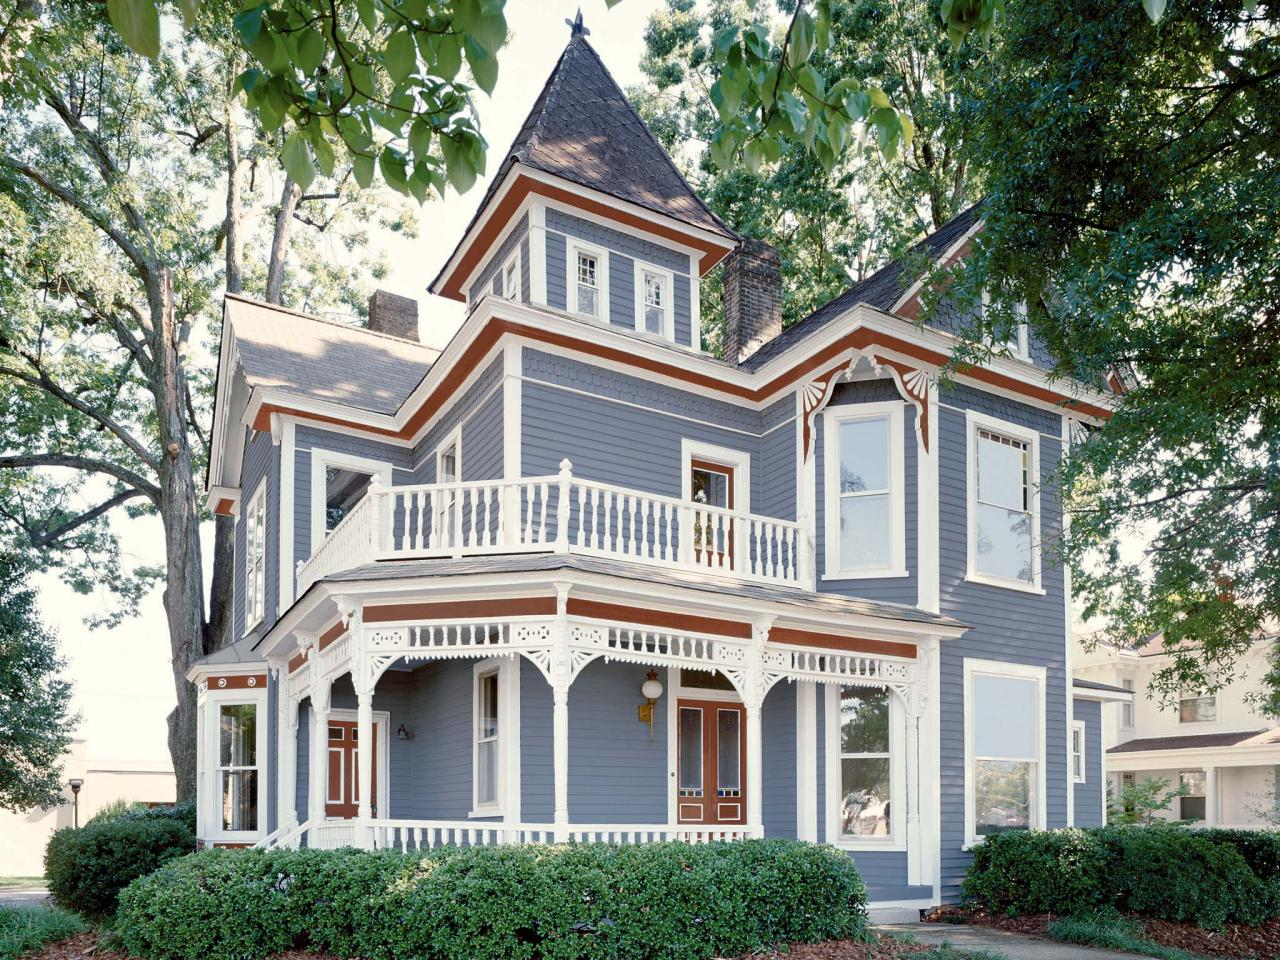 How to select exterior paint colors for a home diy - Best exterior color for small house ...